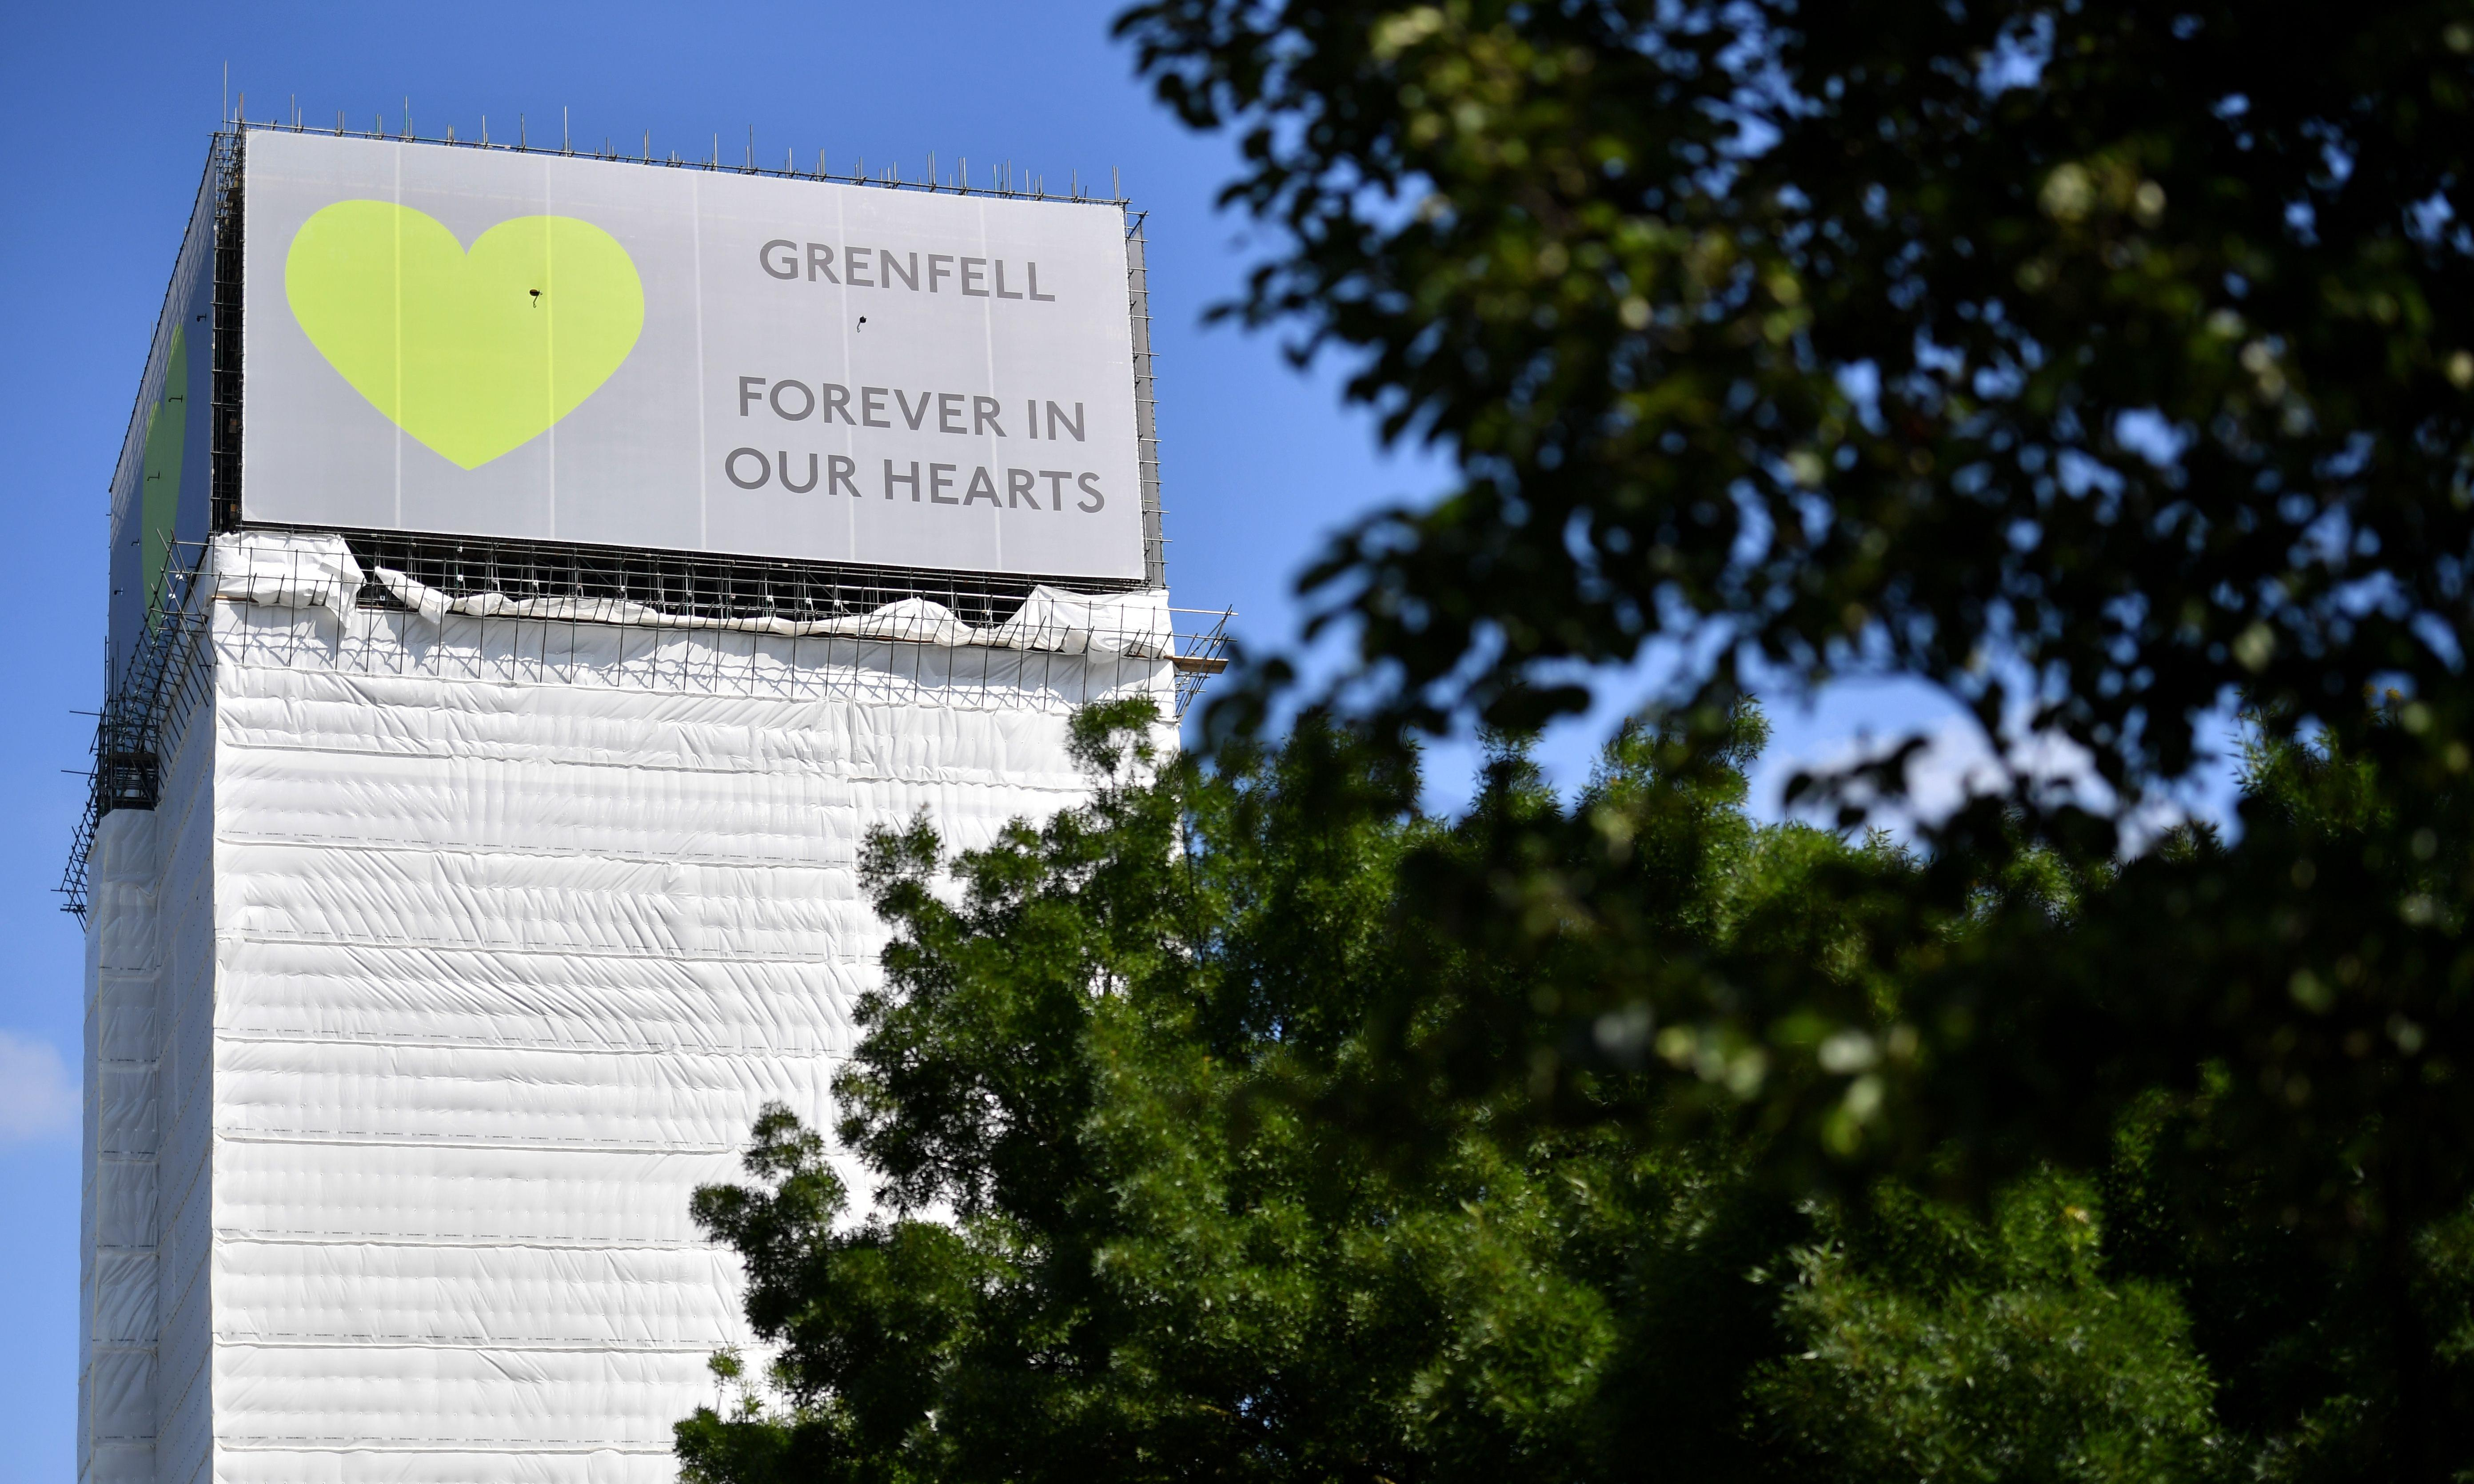 Police identify suspects for possible Grenfell manslaughter charges